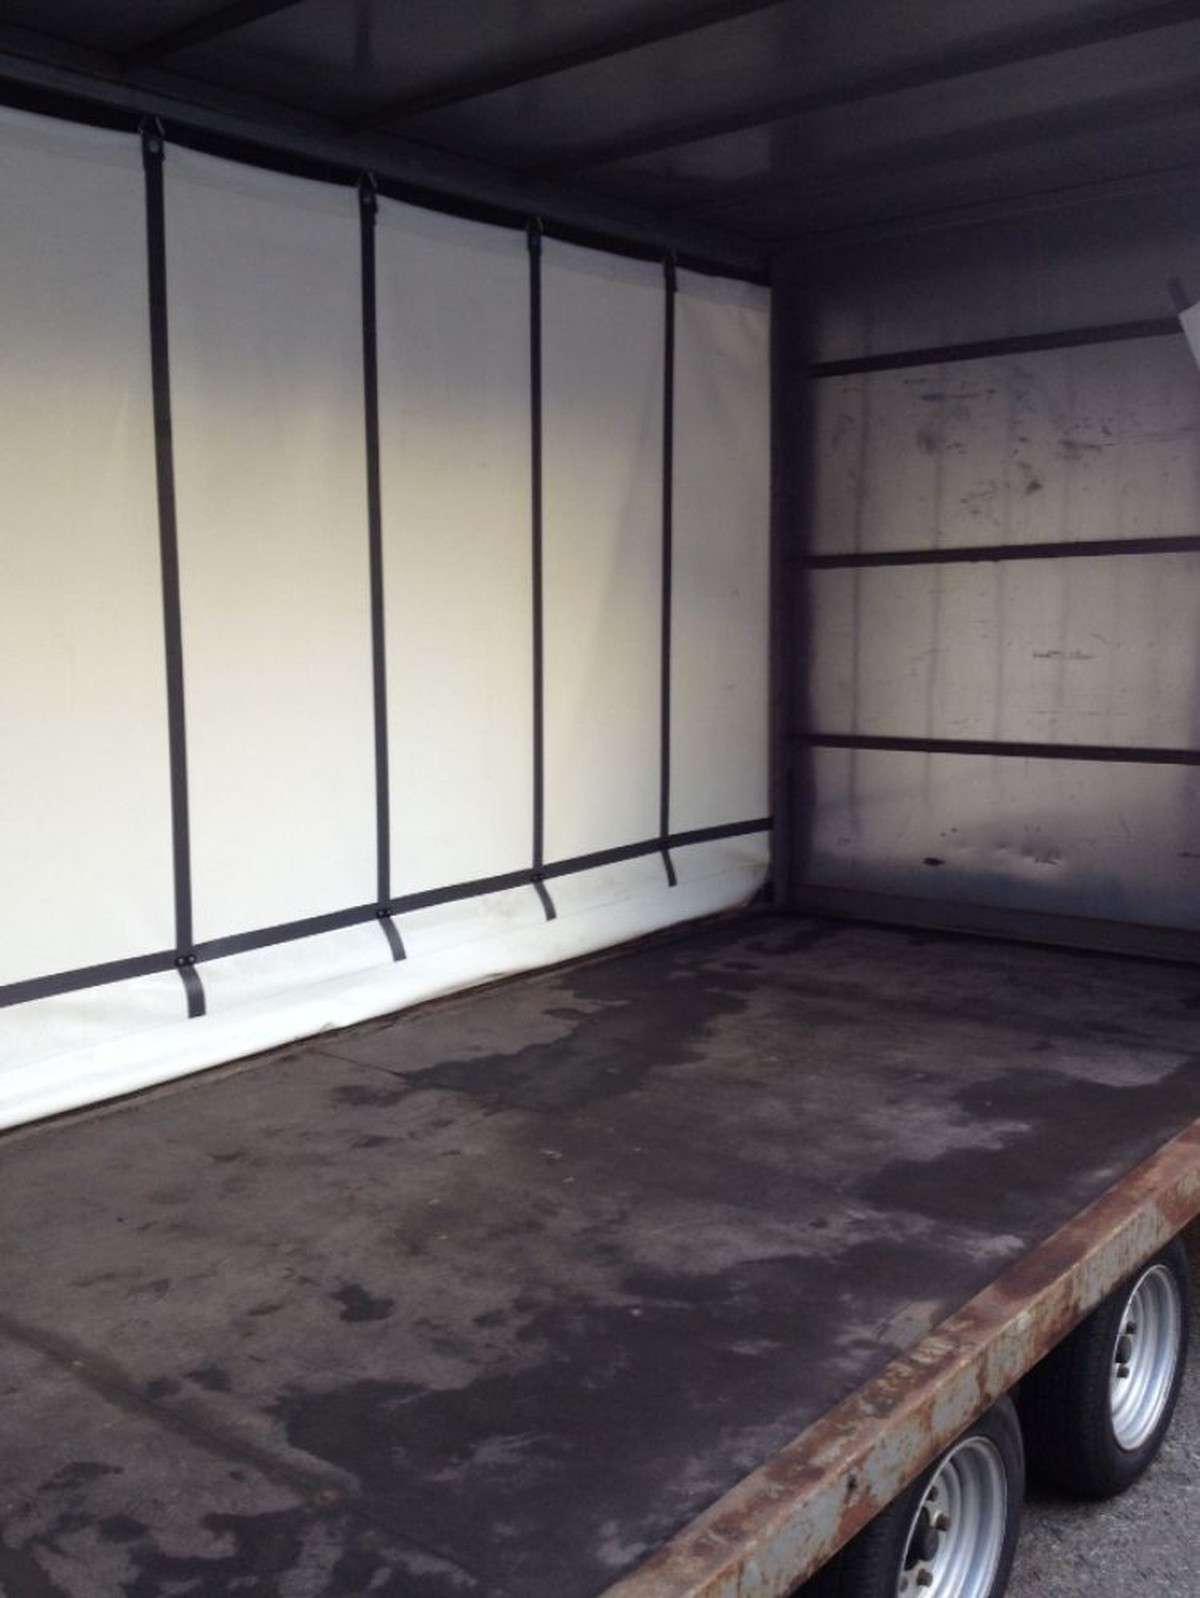 Inside Curtain Side Trailer